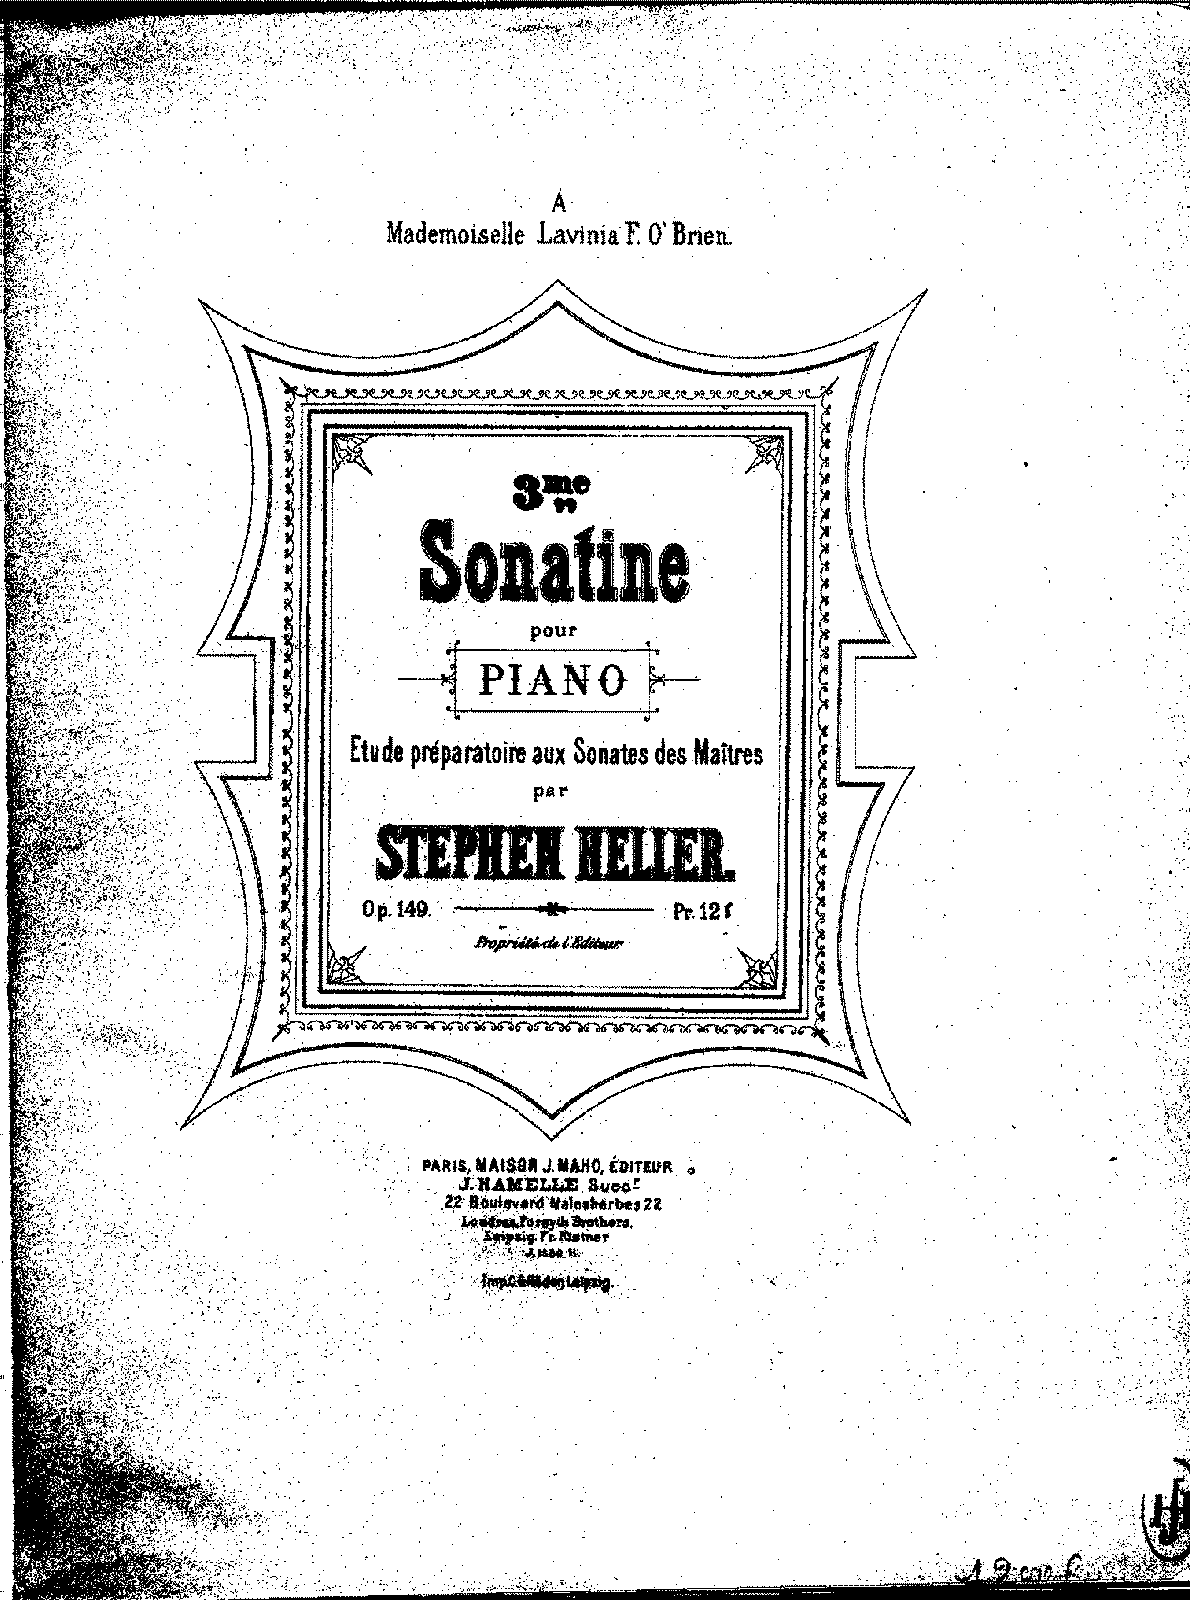 Heller - Op.149 - Sonatine No.3 in D minor.pdf